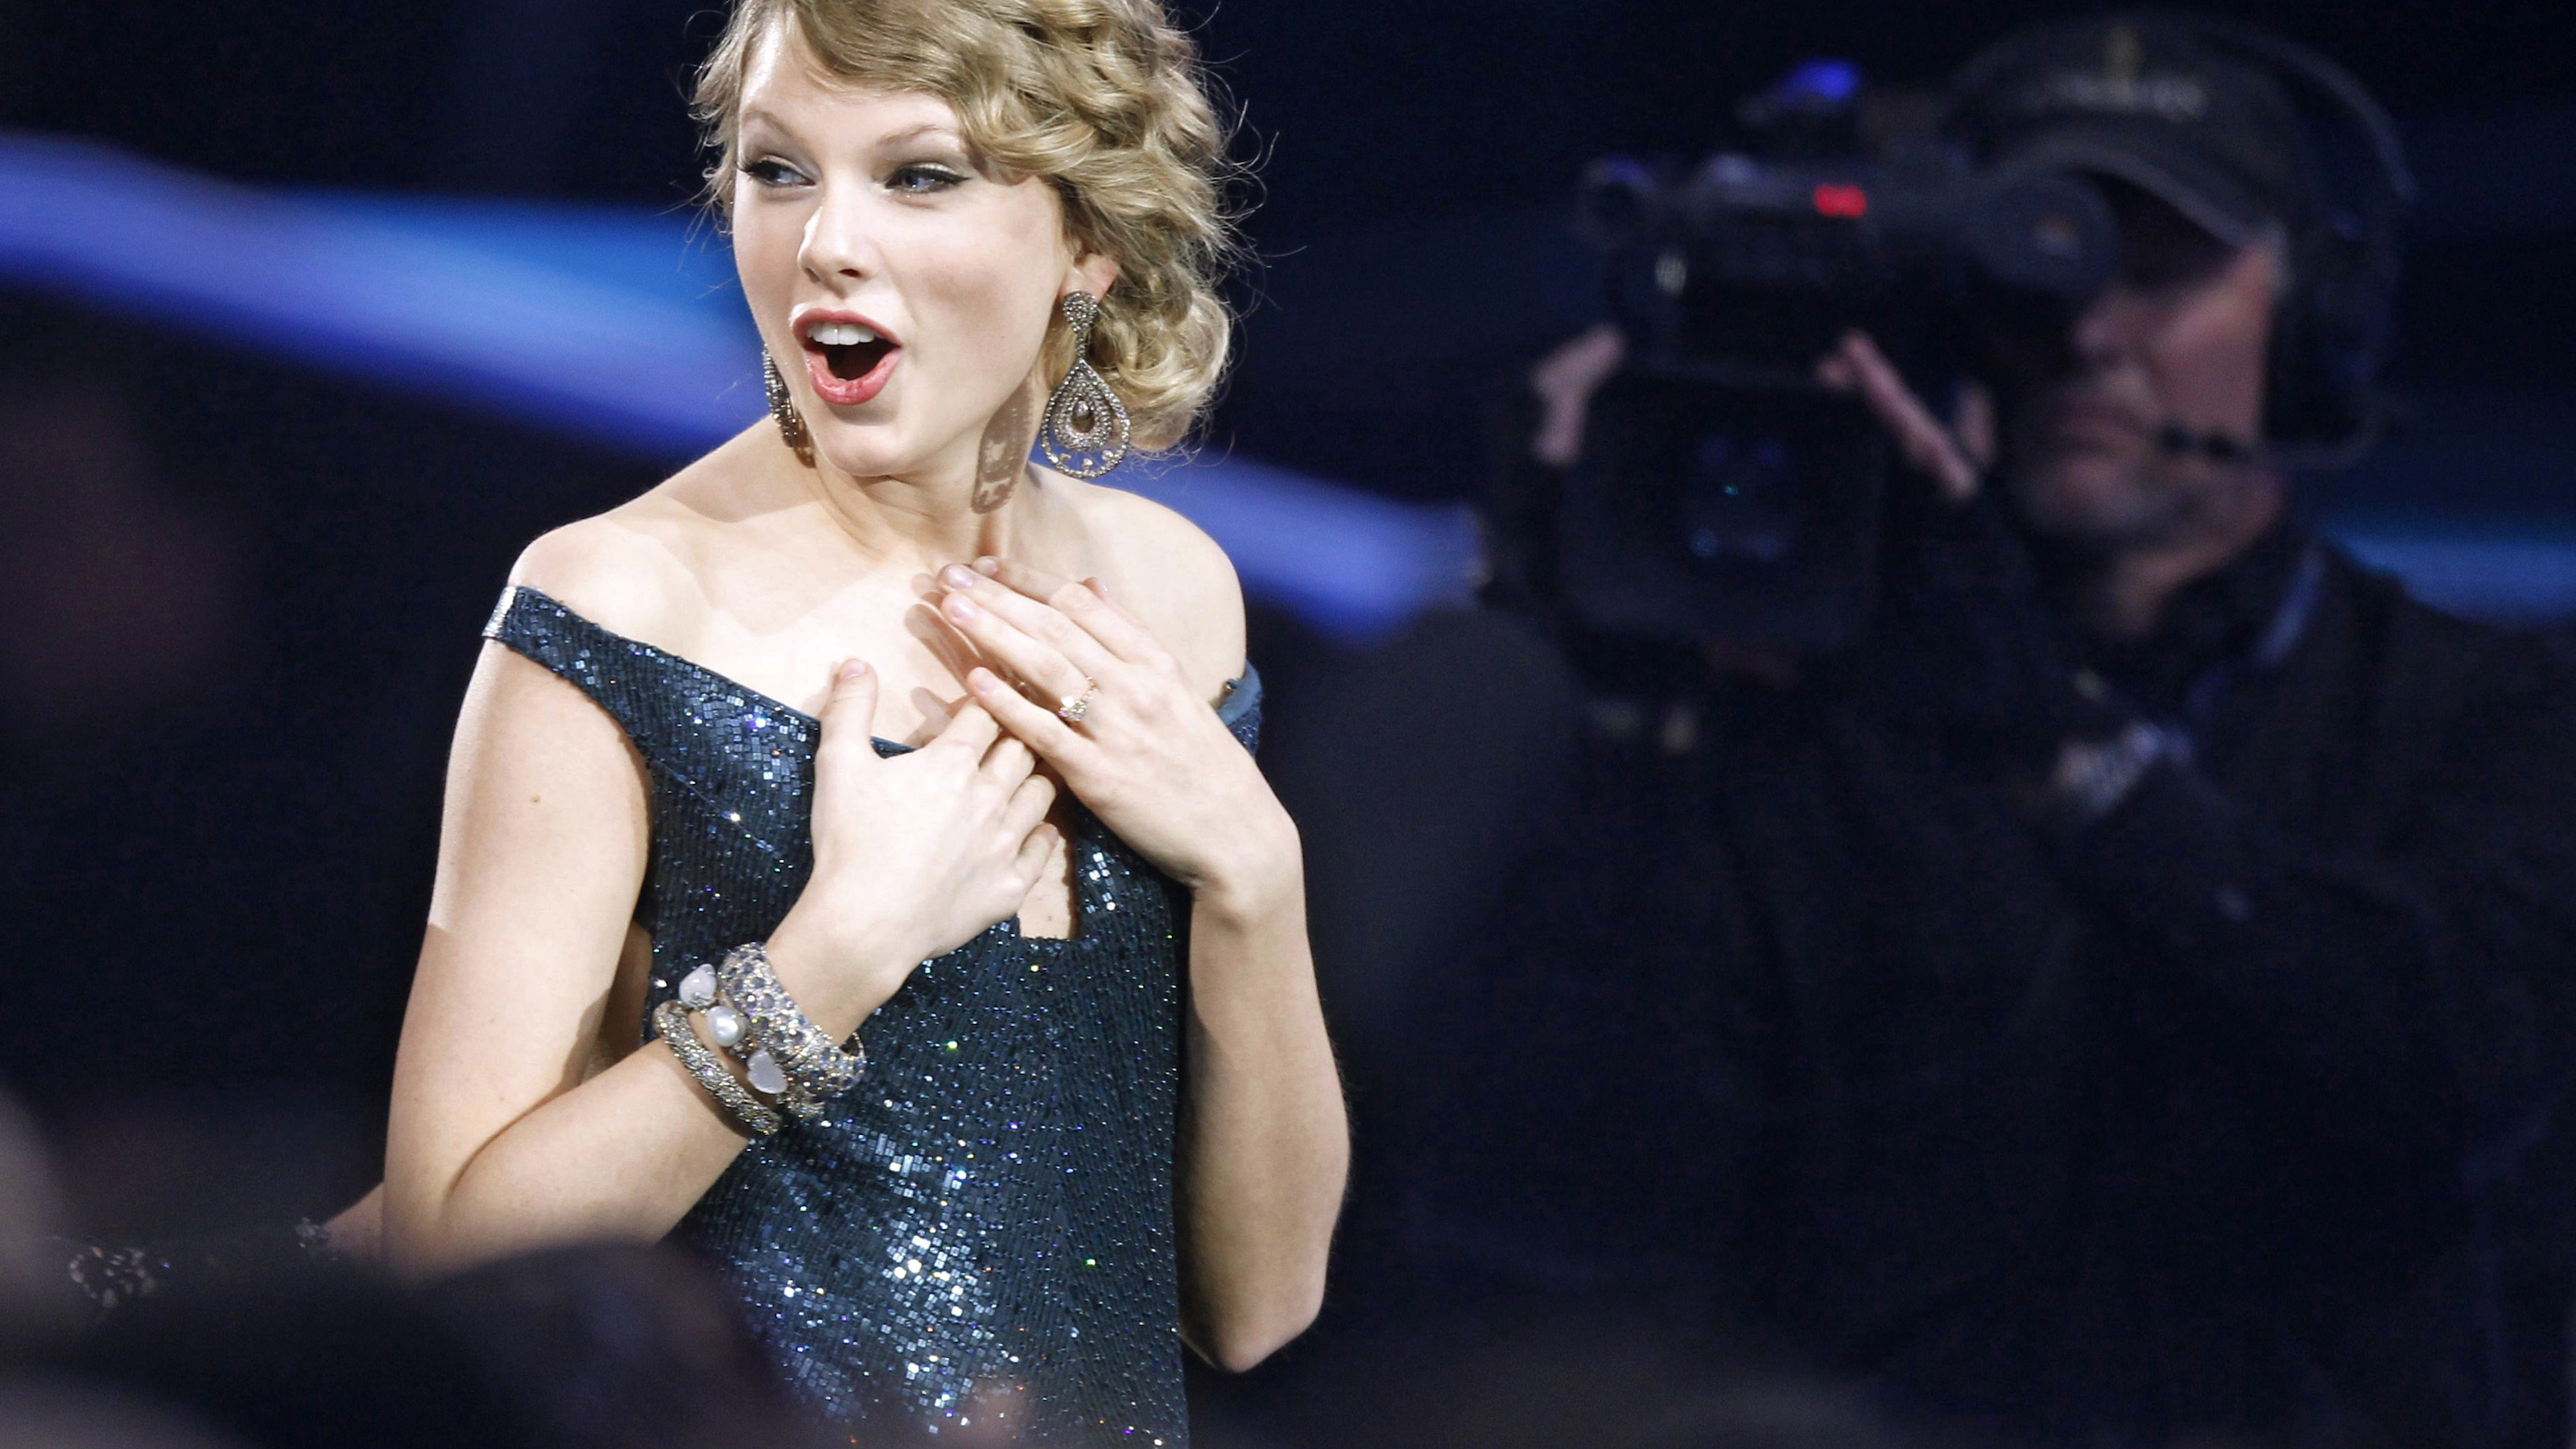 """Taylor Swift reacts after winning best country album for """"Fearless"""" at the 52nd annual Grammy Awards in Los Angeles January 31, 2010.  REUTERS/Mike Blake  (MUSIC-GRAMMYS/SHOW)   (UNITED STATES - Tags: ENTERTAINMENT) - RTR29PN7"""